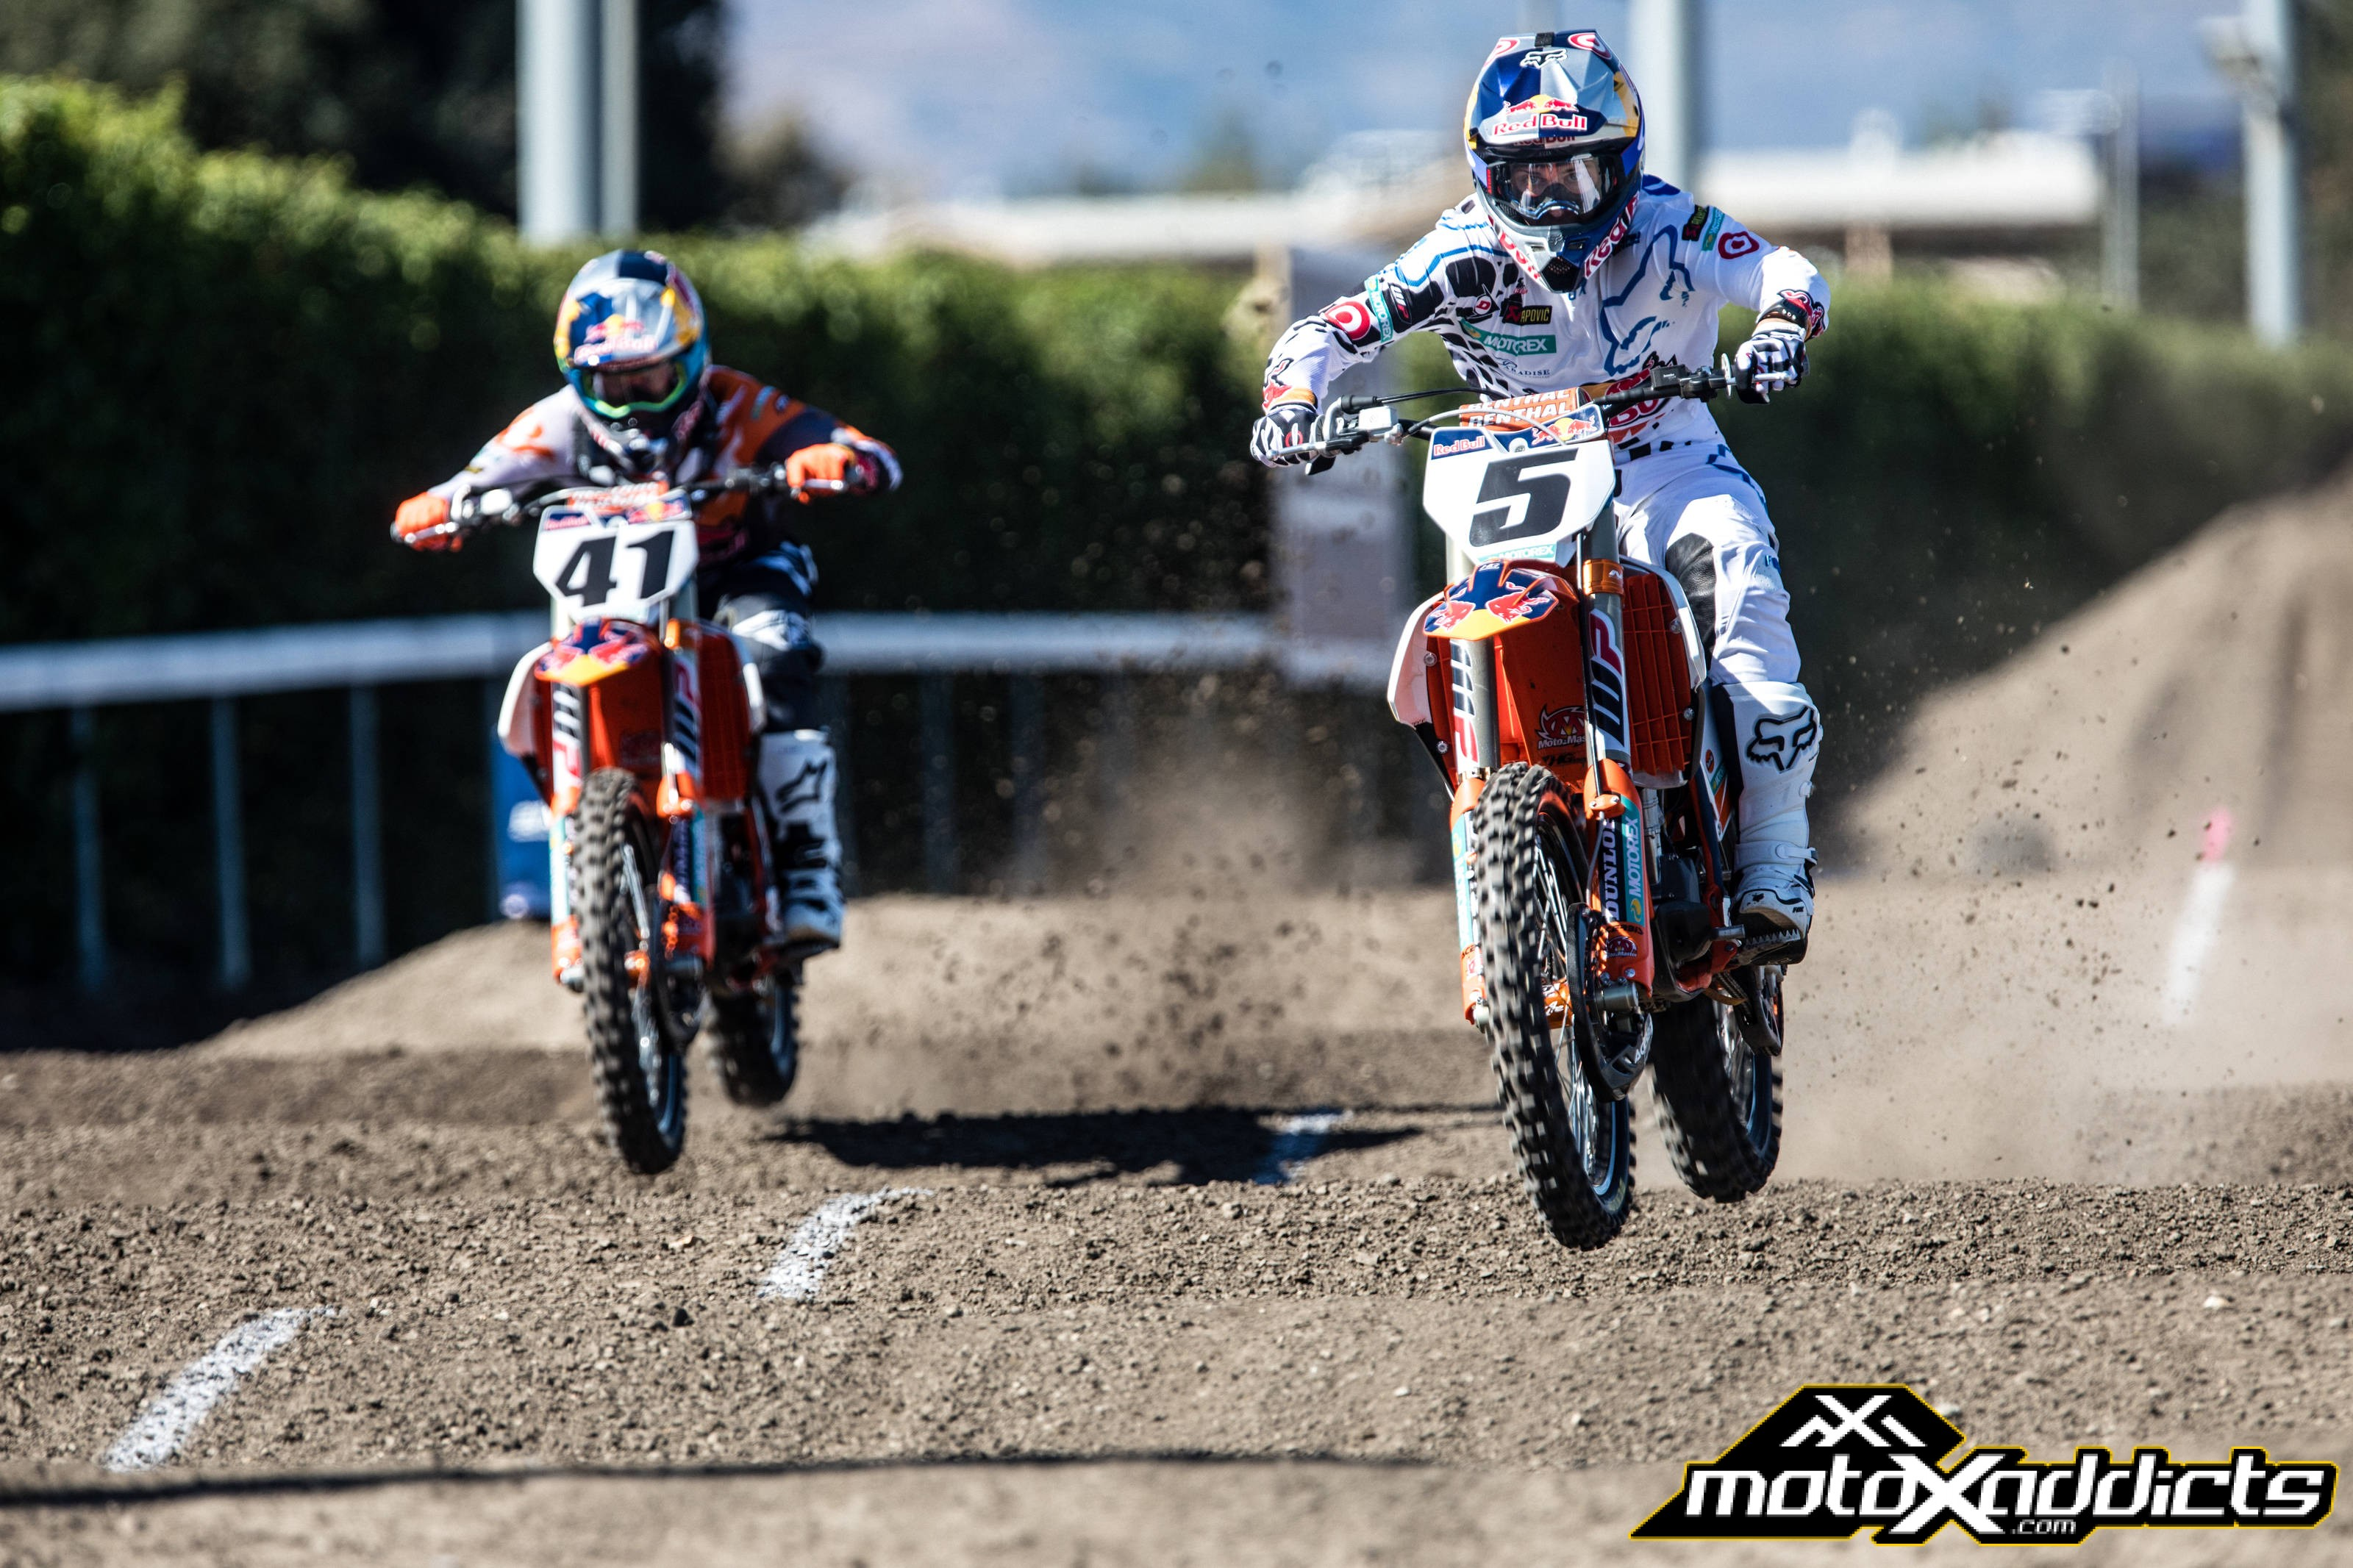 #41 Trey Canard made his KTM debut at the 2016 Red Bull Straight Rhythm. Trey finished 4th overall in his debut. Photo by: Red Bull Content Pool